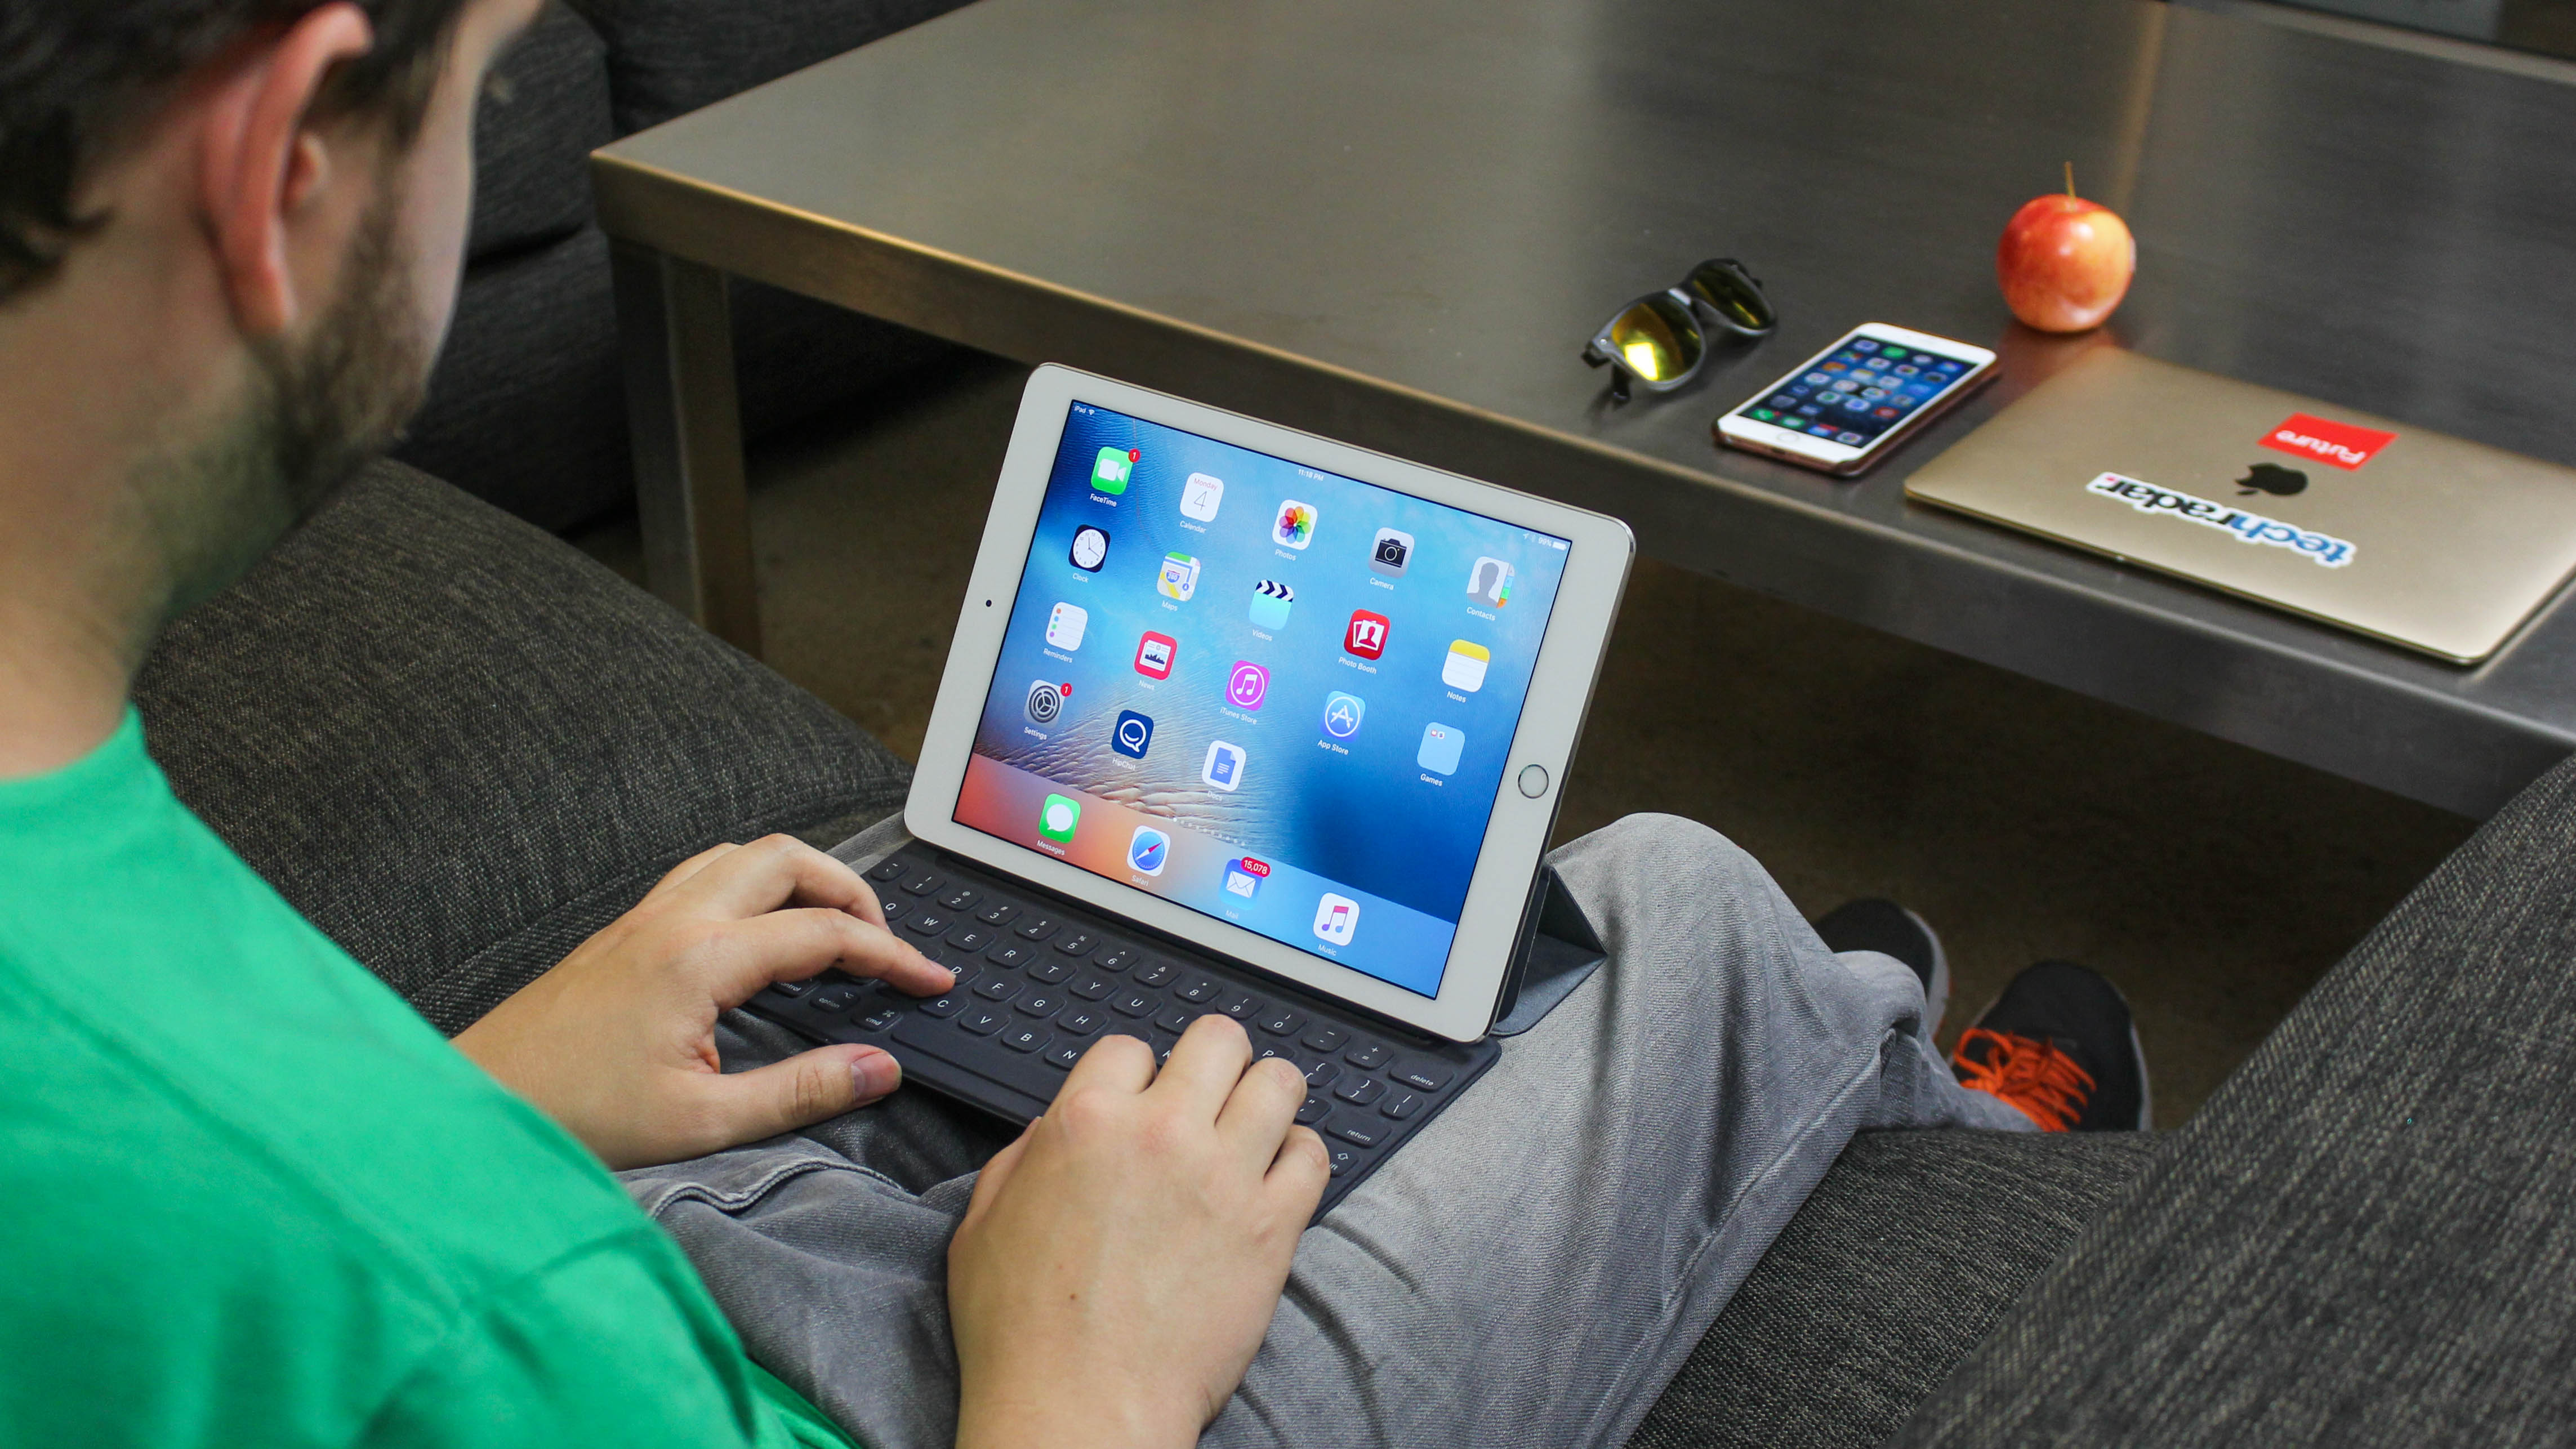 Sales figures show that Android tablets may be on the way